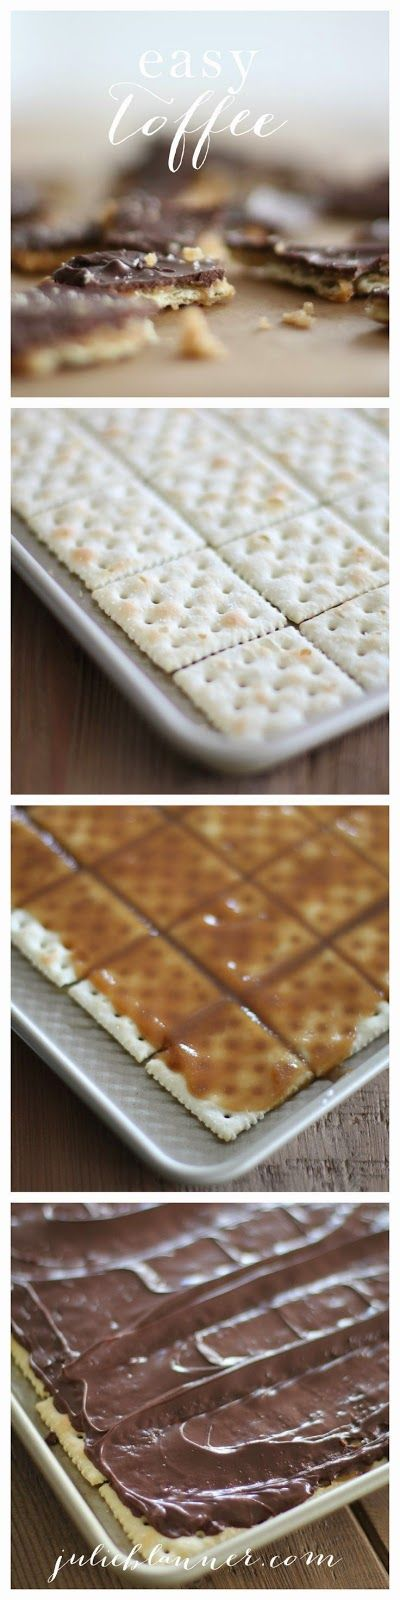 all-food-drink: How To Easy Toffee